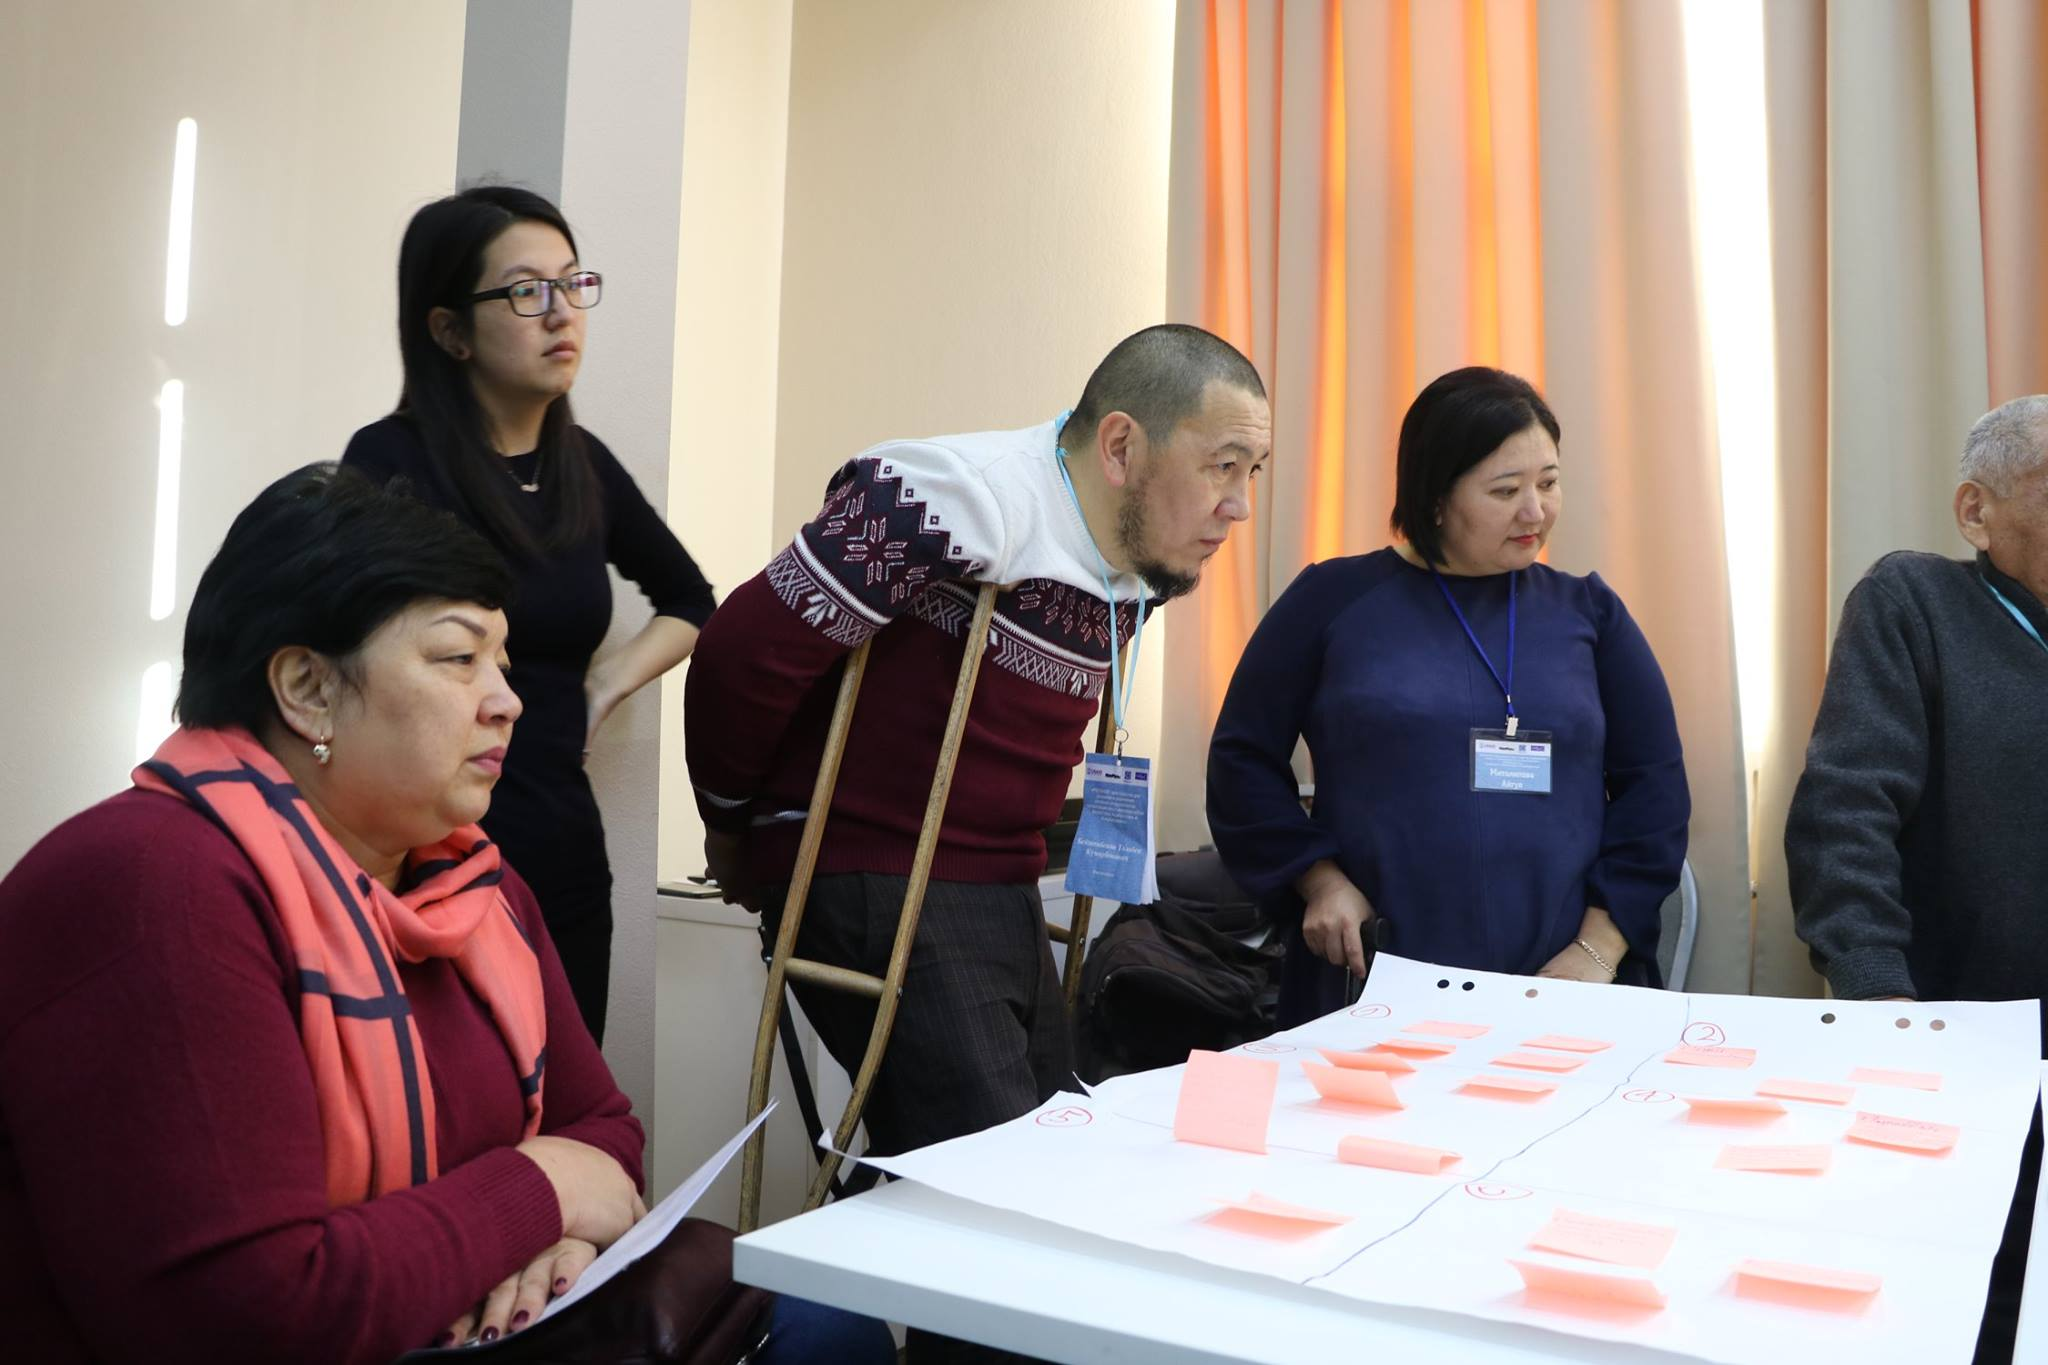 In step to ensure human rights, Kyrgyzstan ratifies UN pact on disabilities